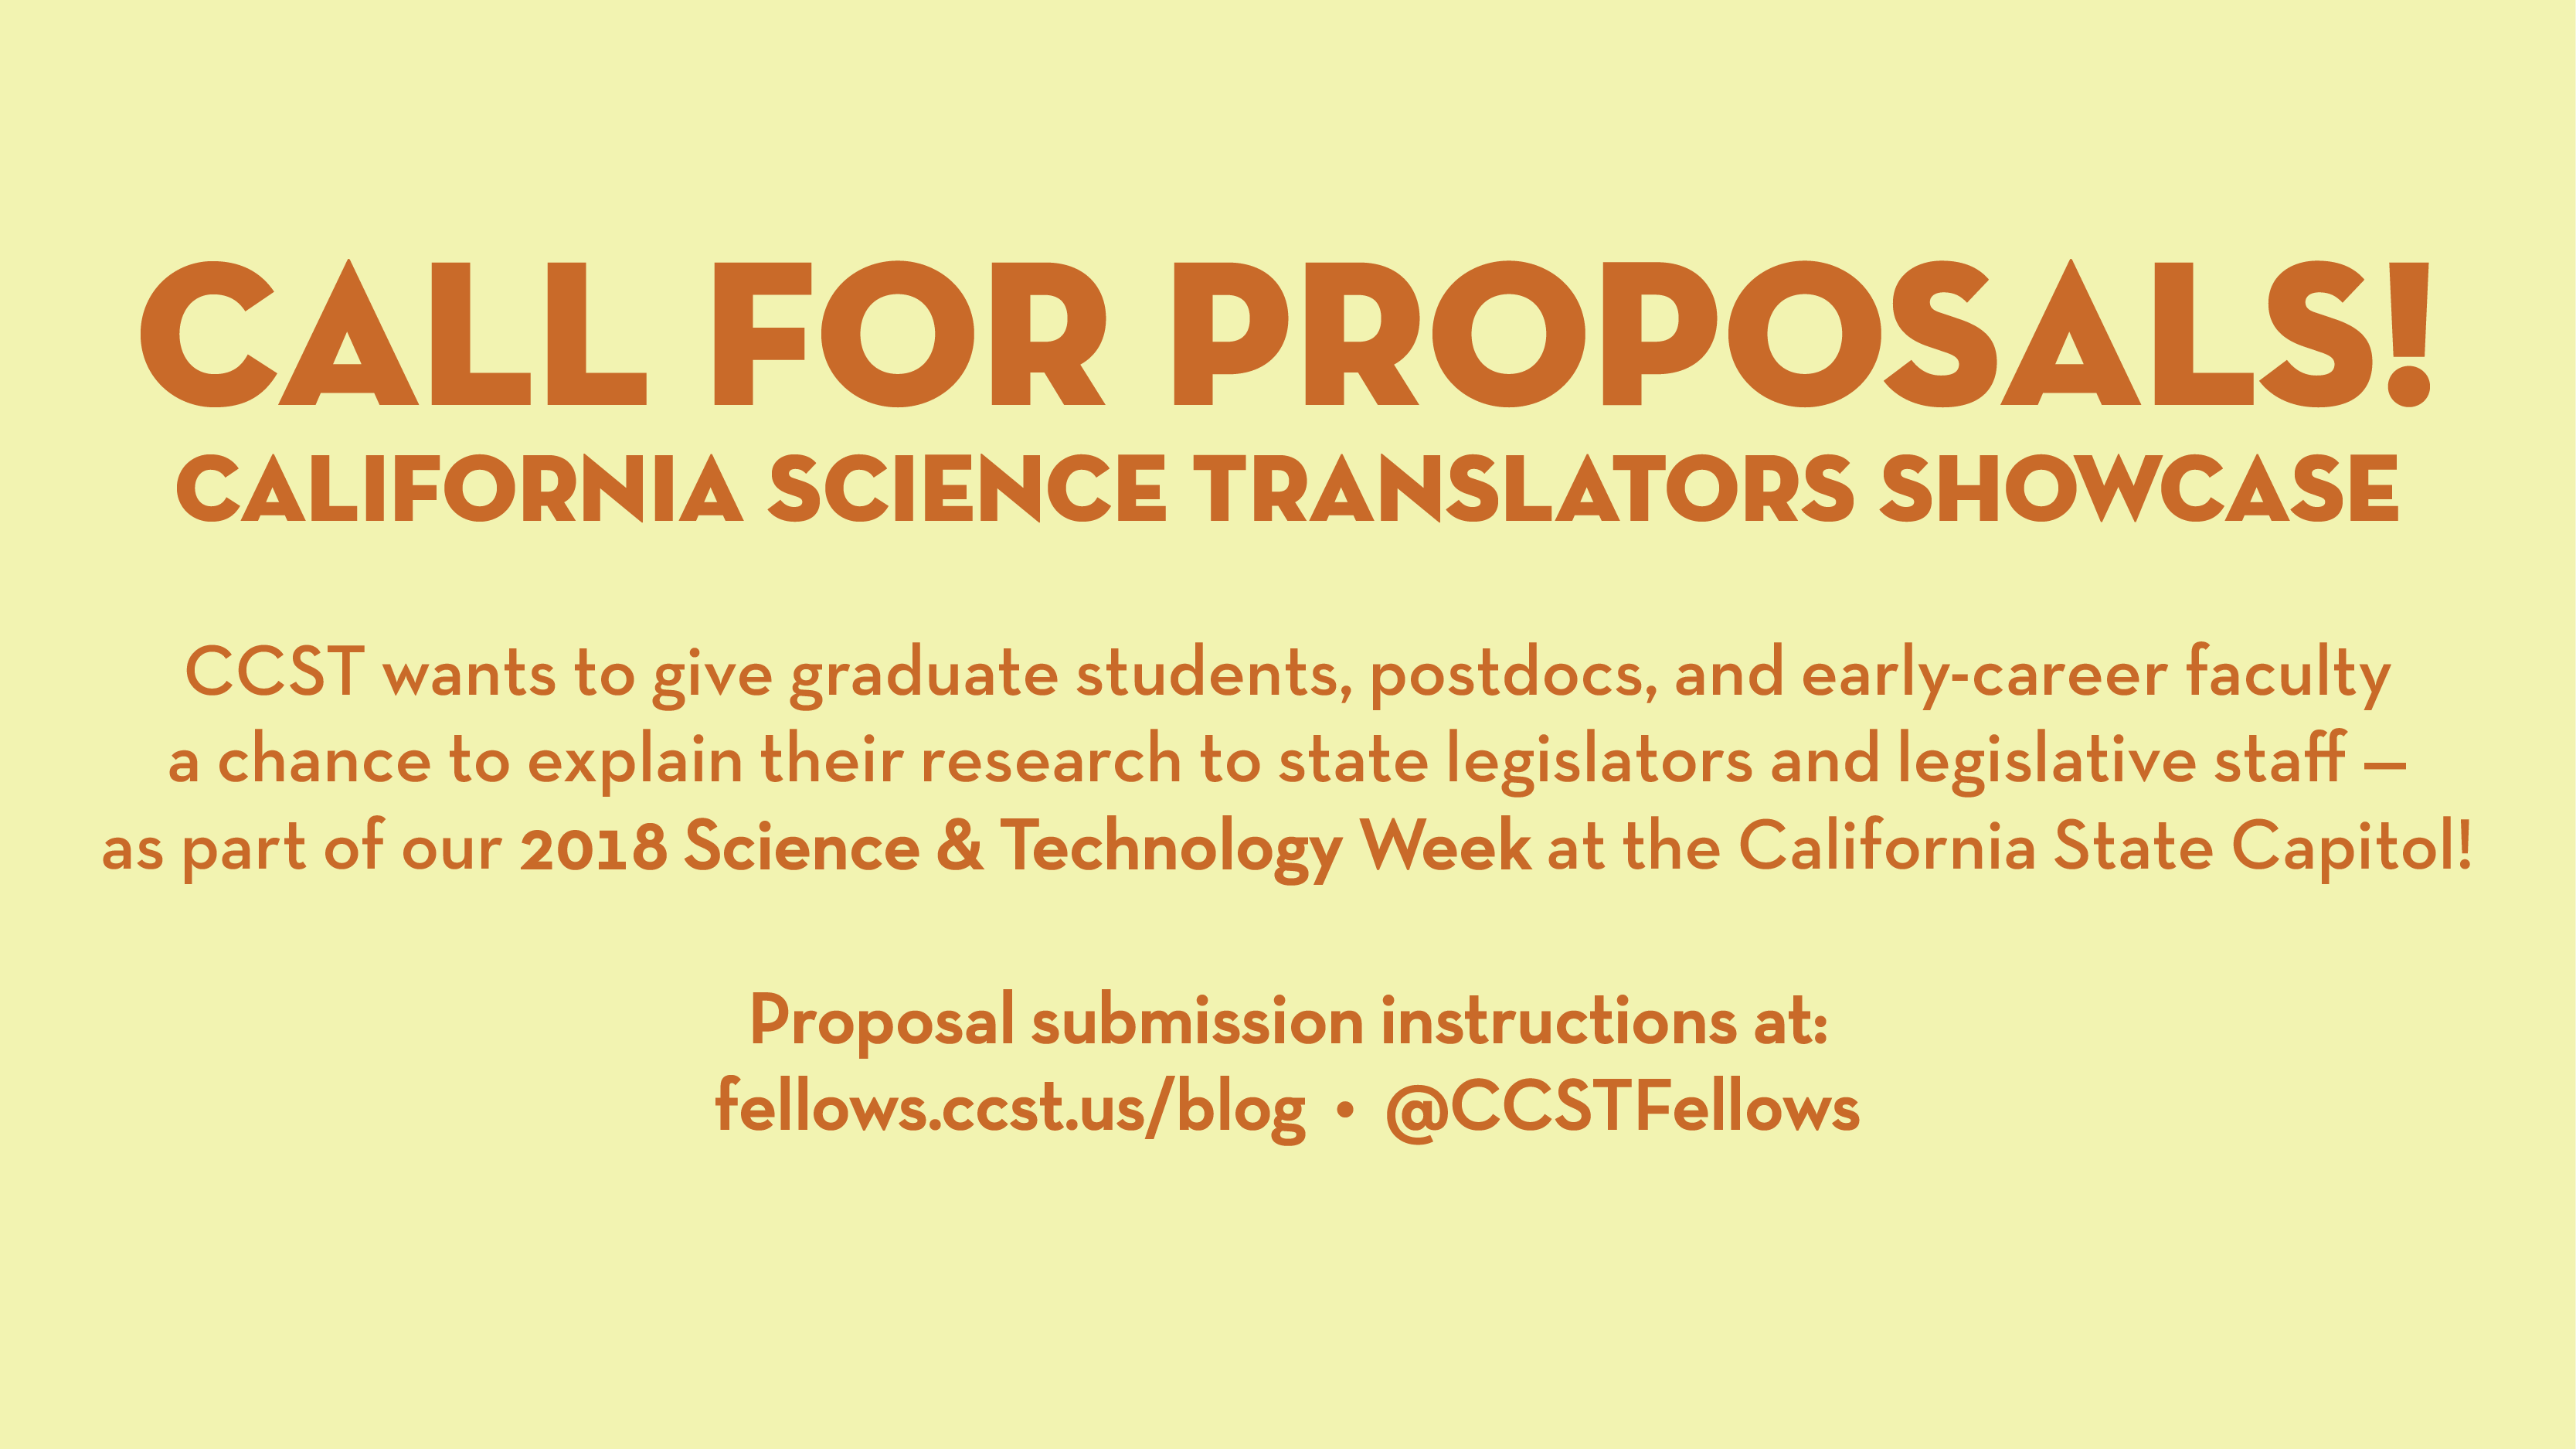 A graphic banner announcing the California Science Translators Showcase. The text is orange, and the background is a pale yellow.